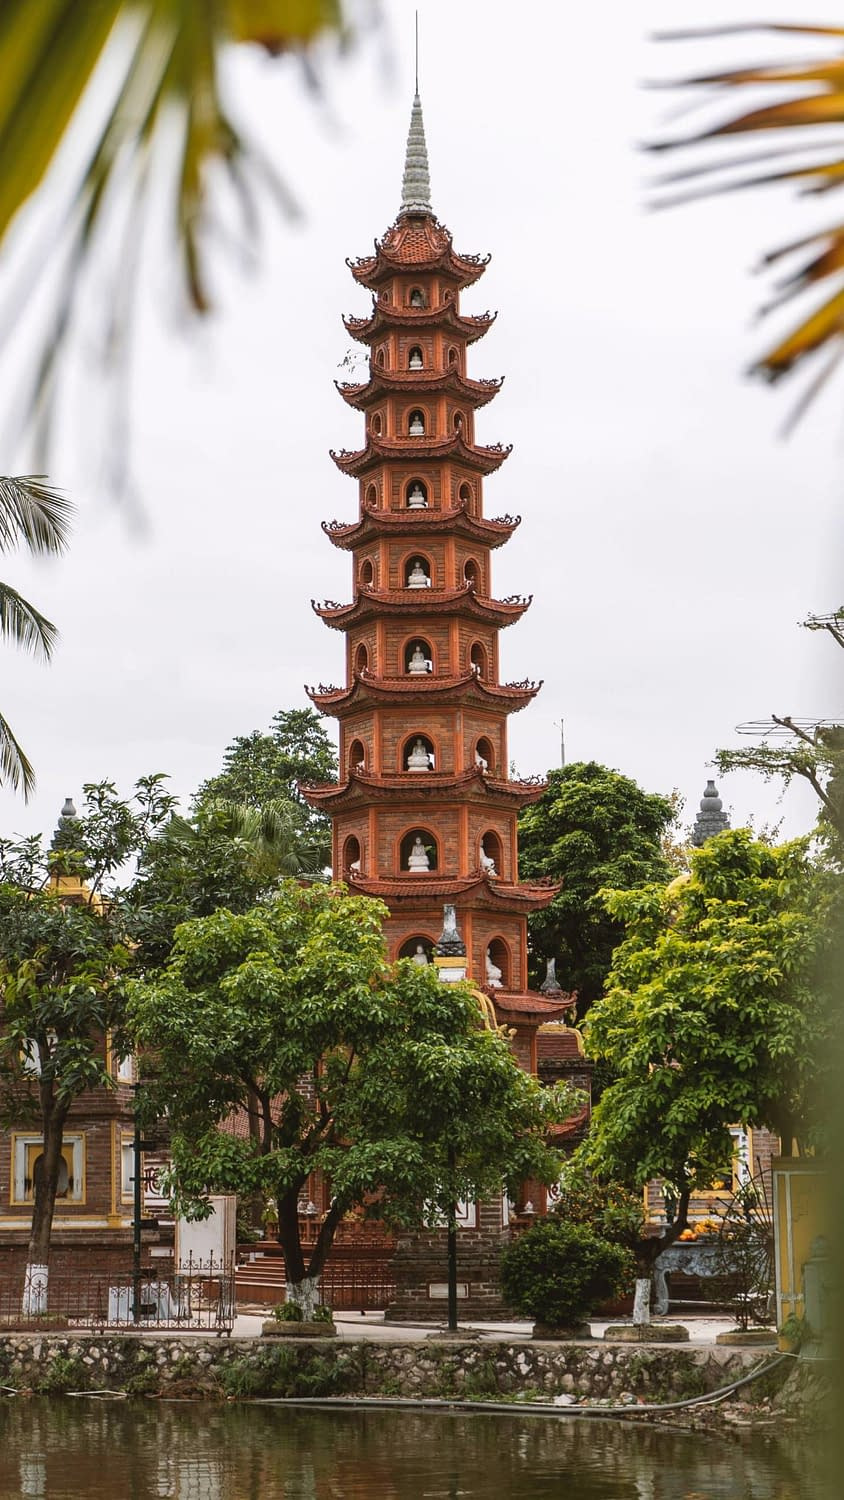 A beautiful Vietnamese temple in the capital of Hanoi